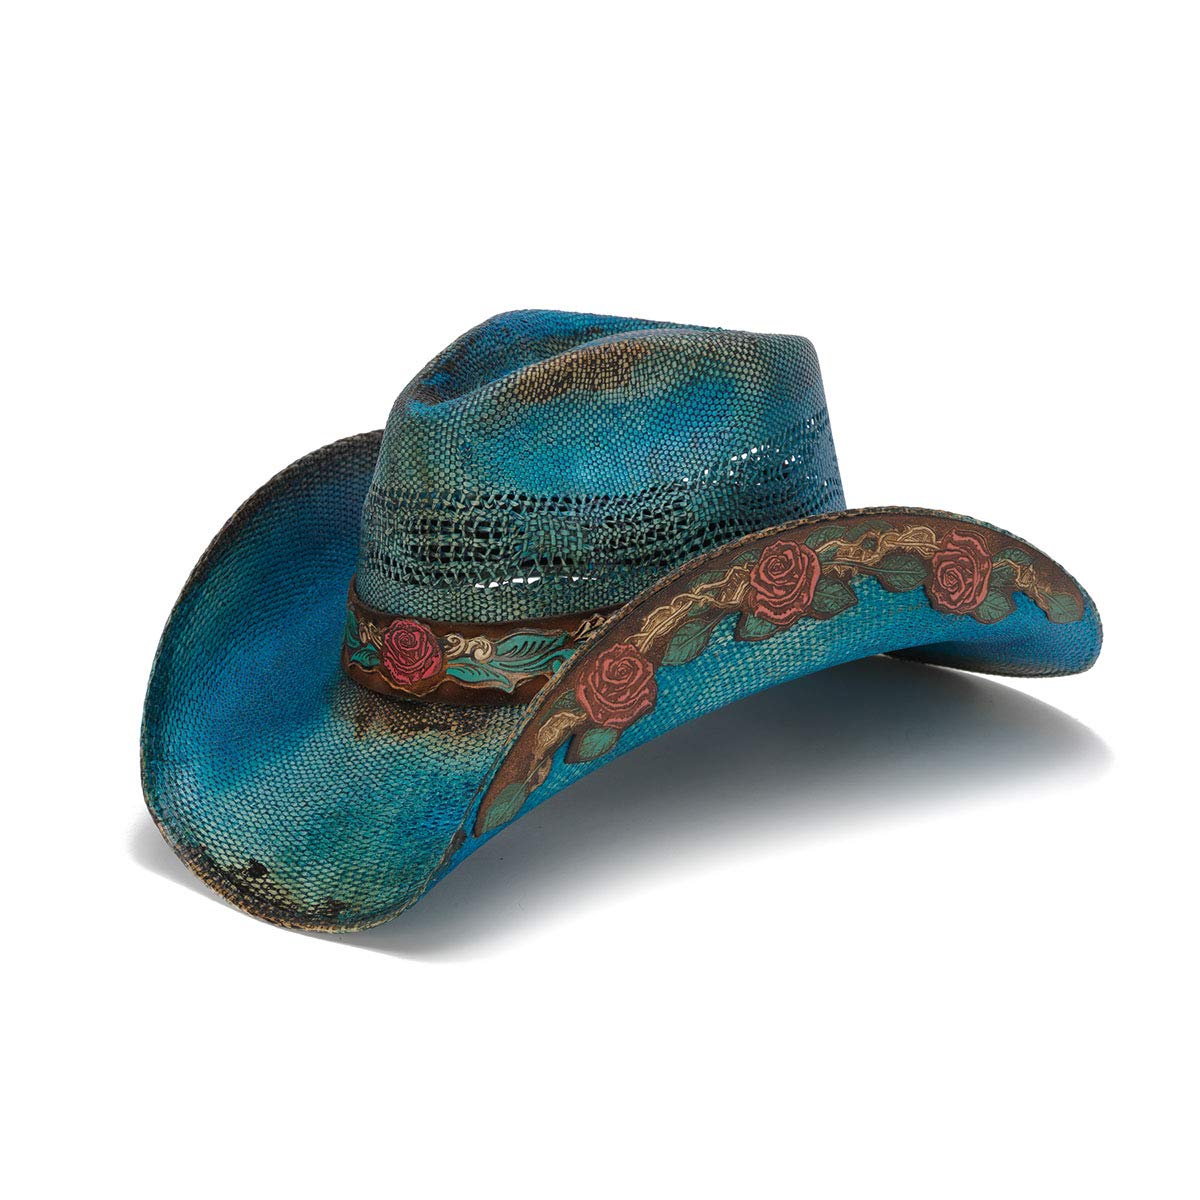 Stampede Hats Women's Love Story Rose Straw Western Hat S Blue by Stampede Hats